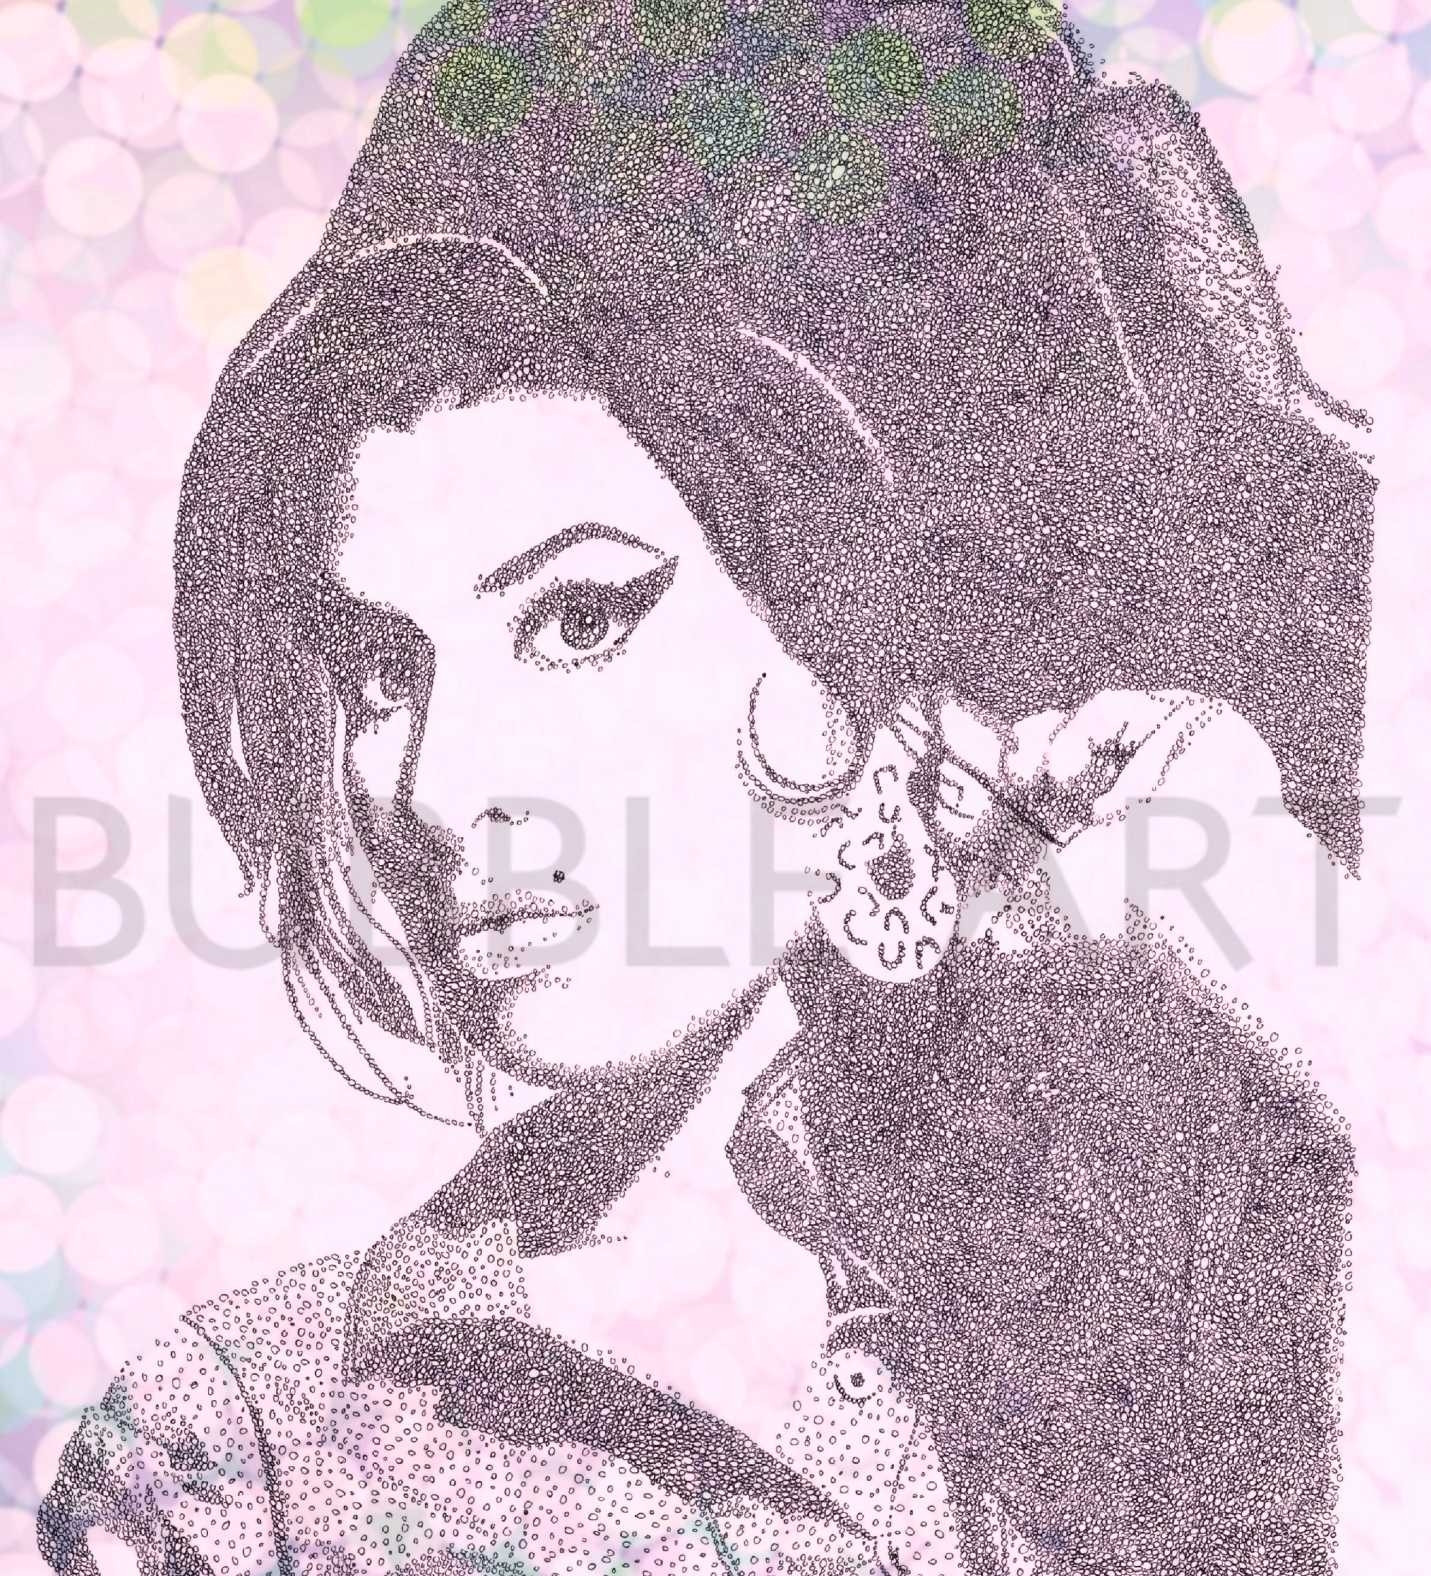 Amy Winehouse poster A2